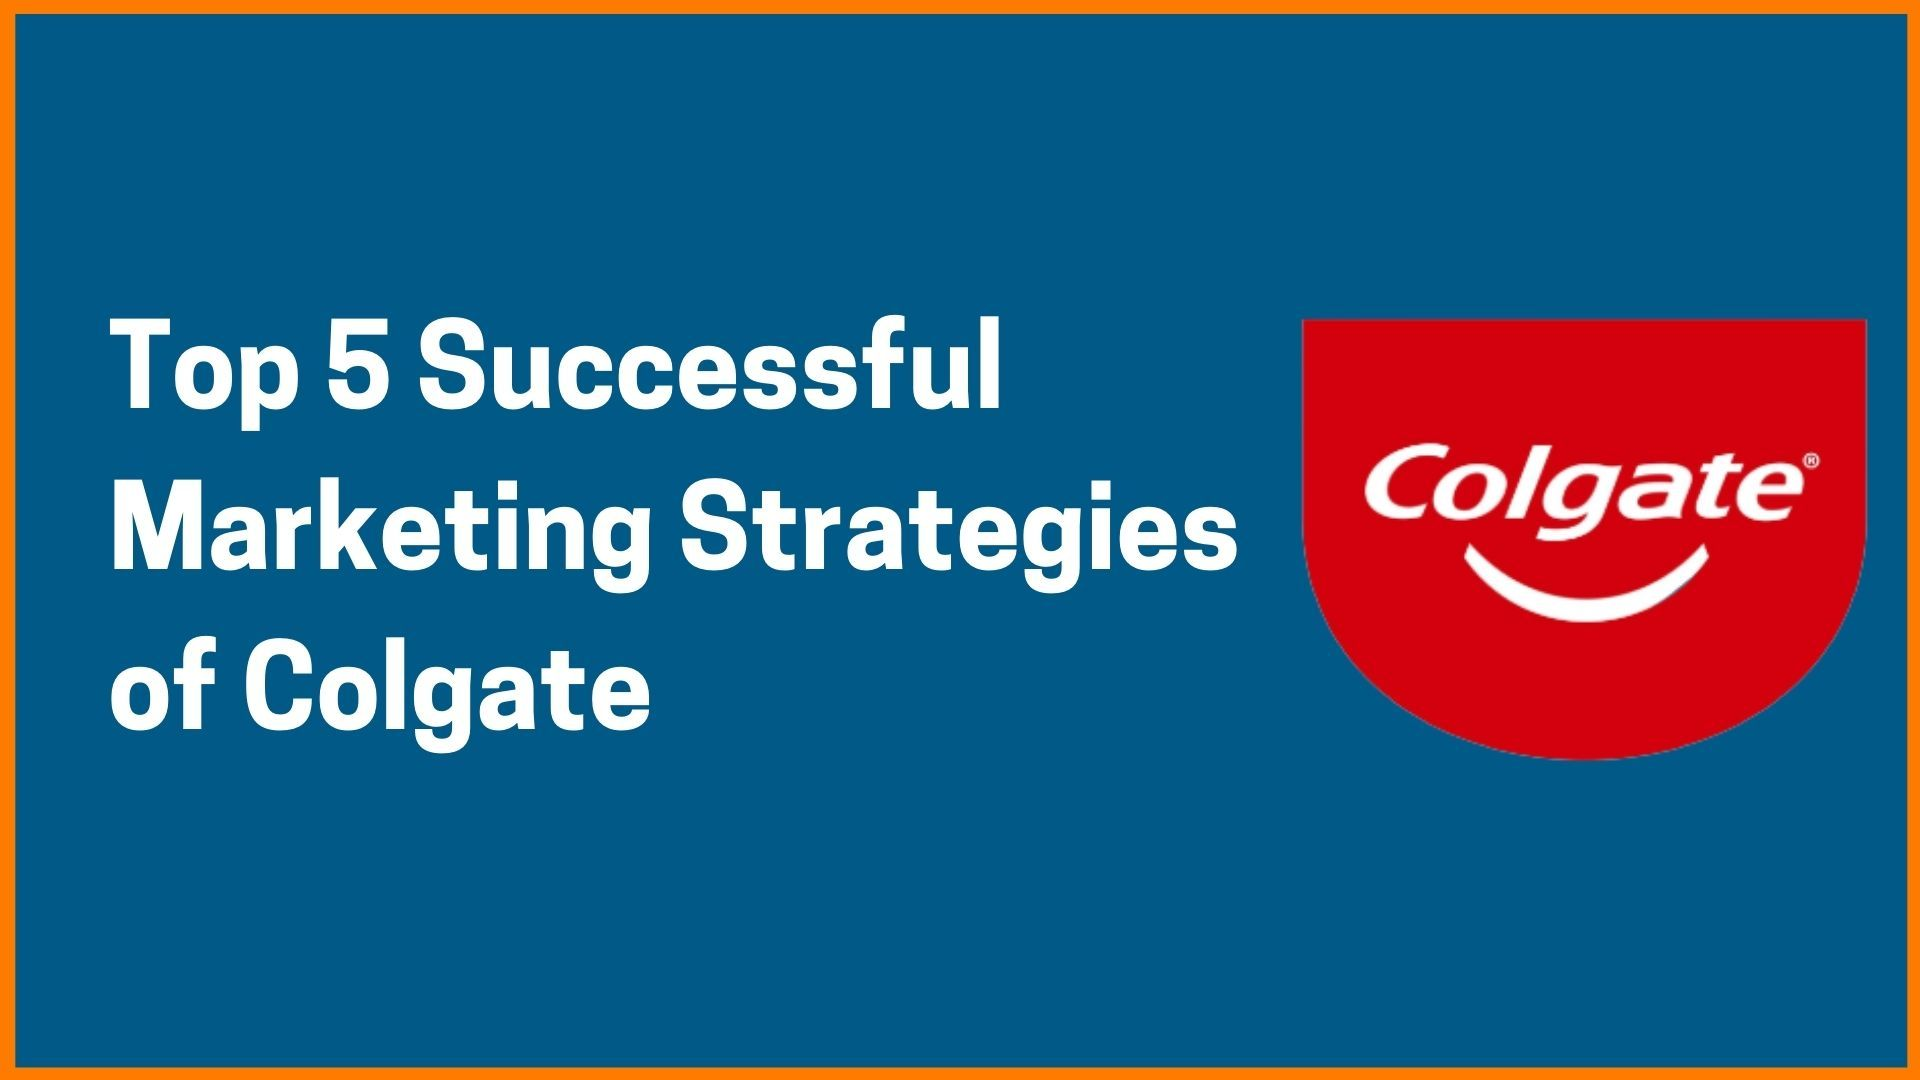 Top 5 Successful Marketing Strategies of Colgate